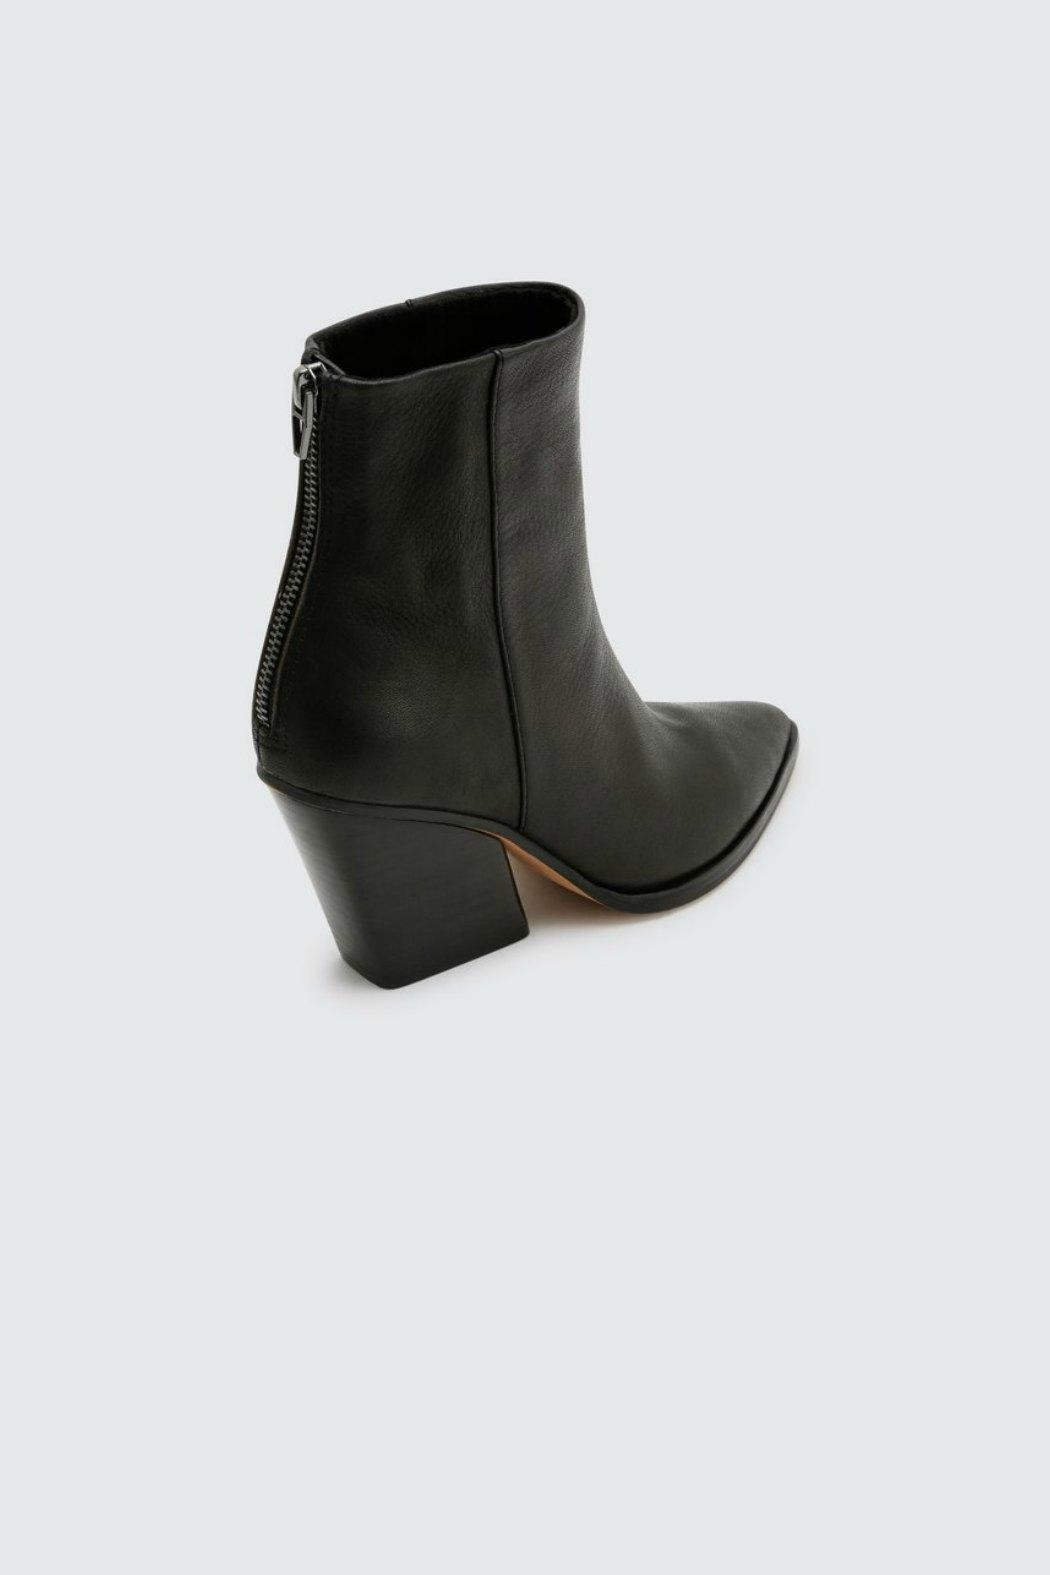 Dolce Vita Issa Wedge-Heel Boot - Back Cropped Image